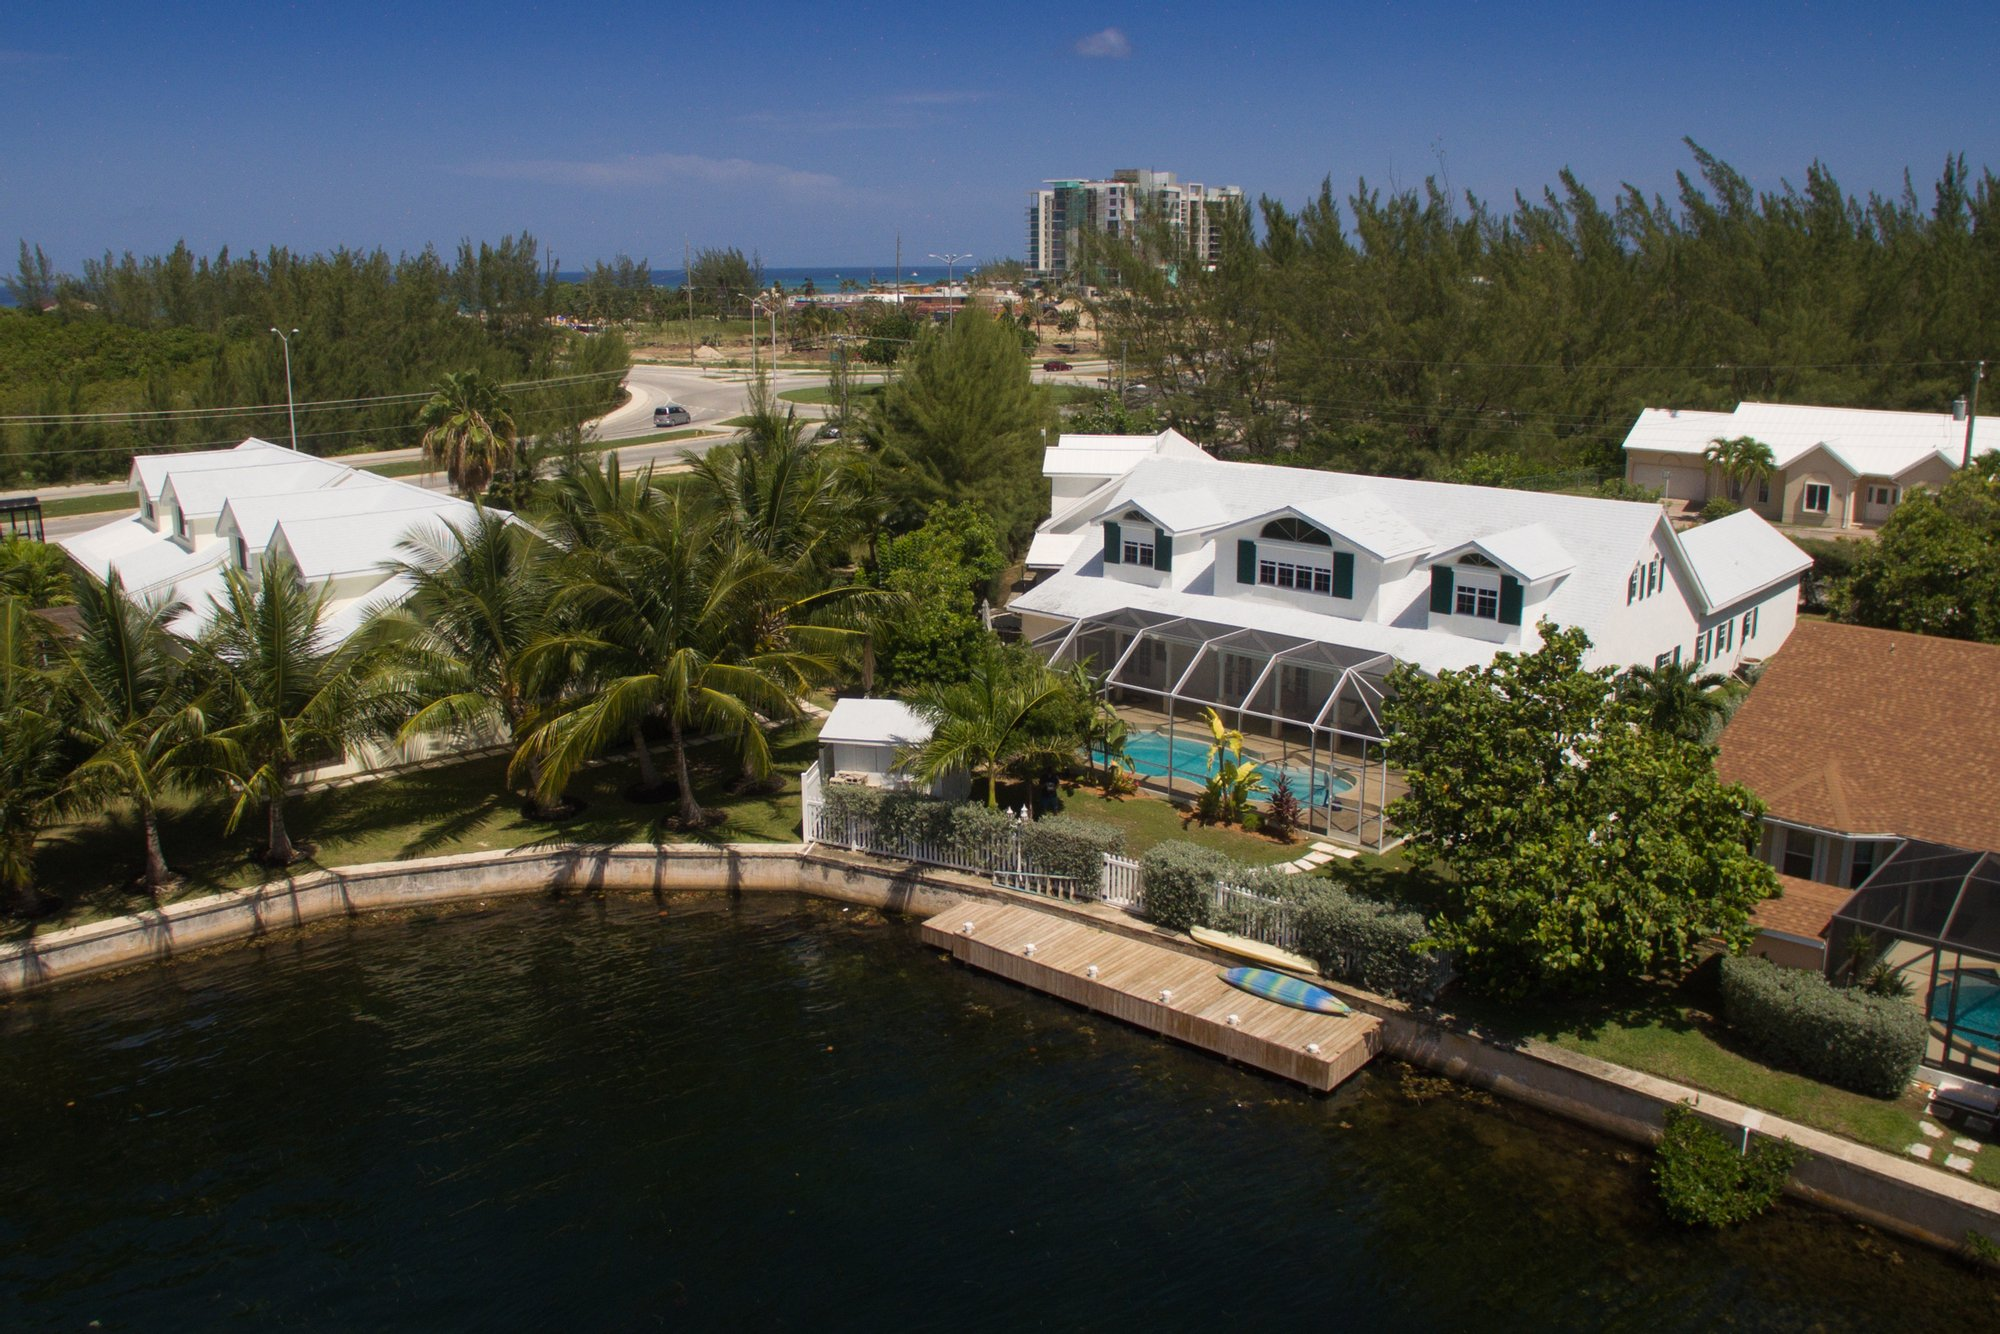 House in West Bay, West Bay, Cayman Islands 1 - 11494144